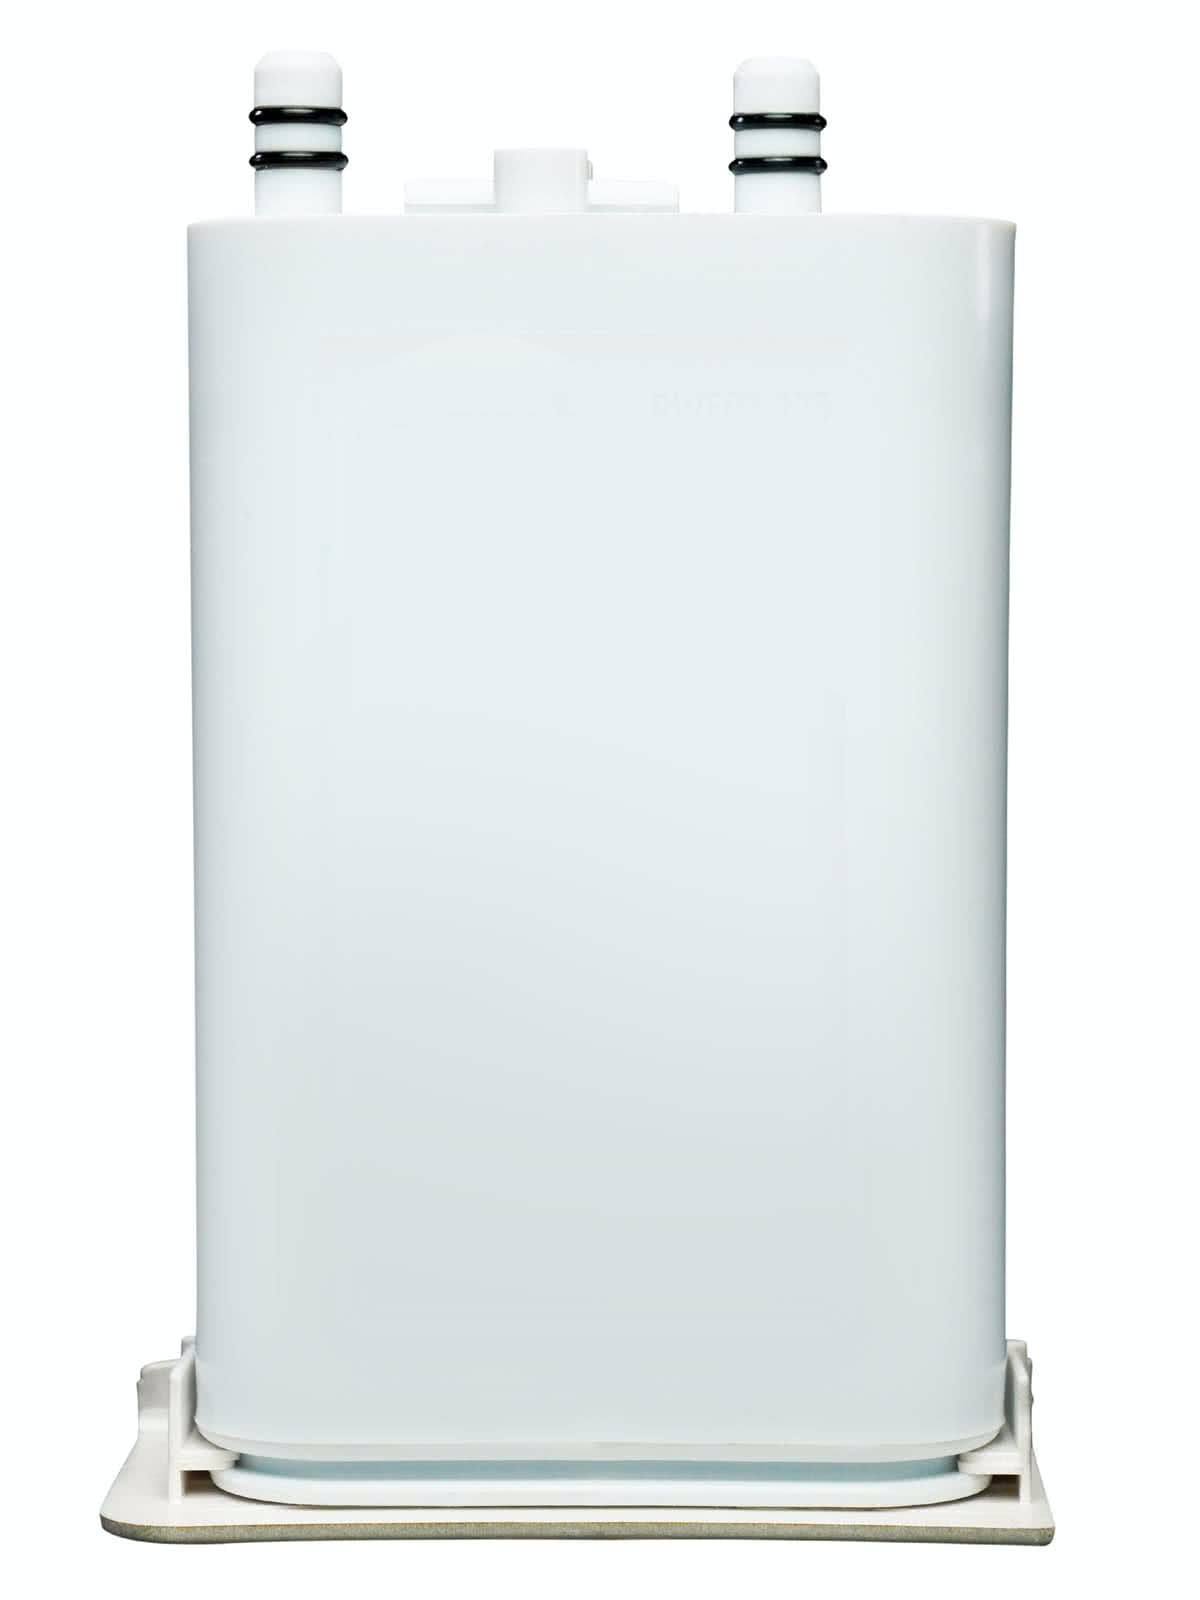 Electrolux compatible second nature water filter